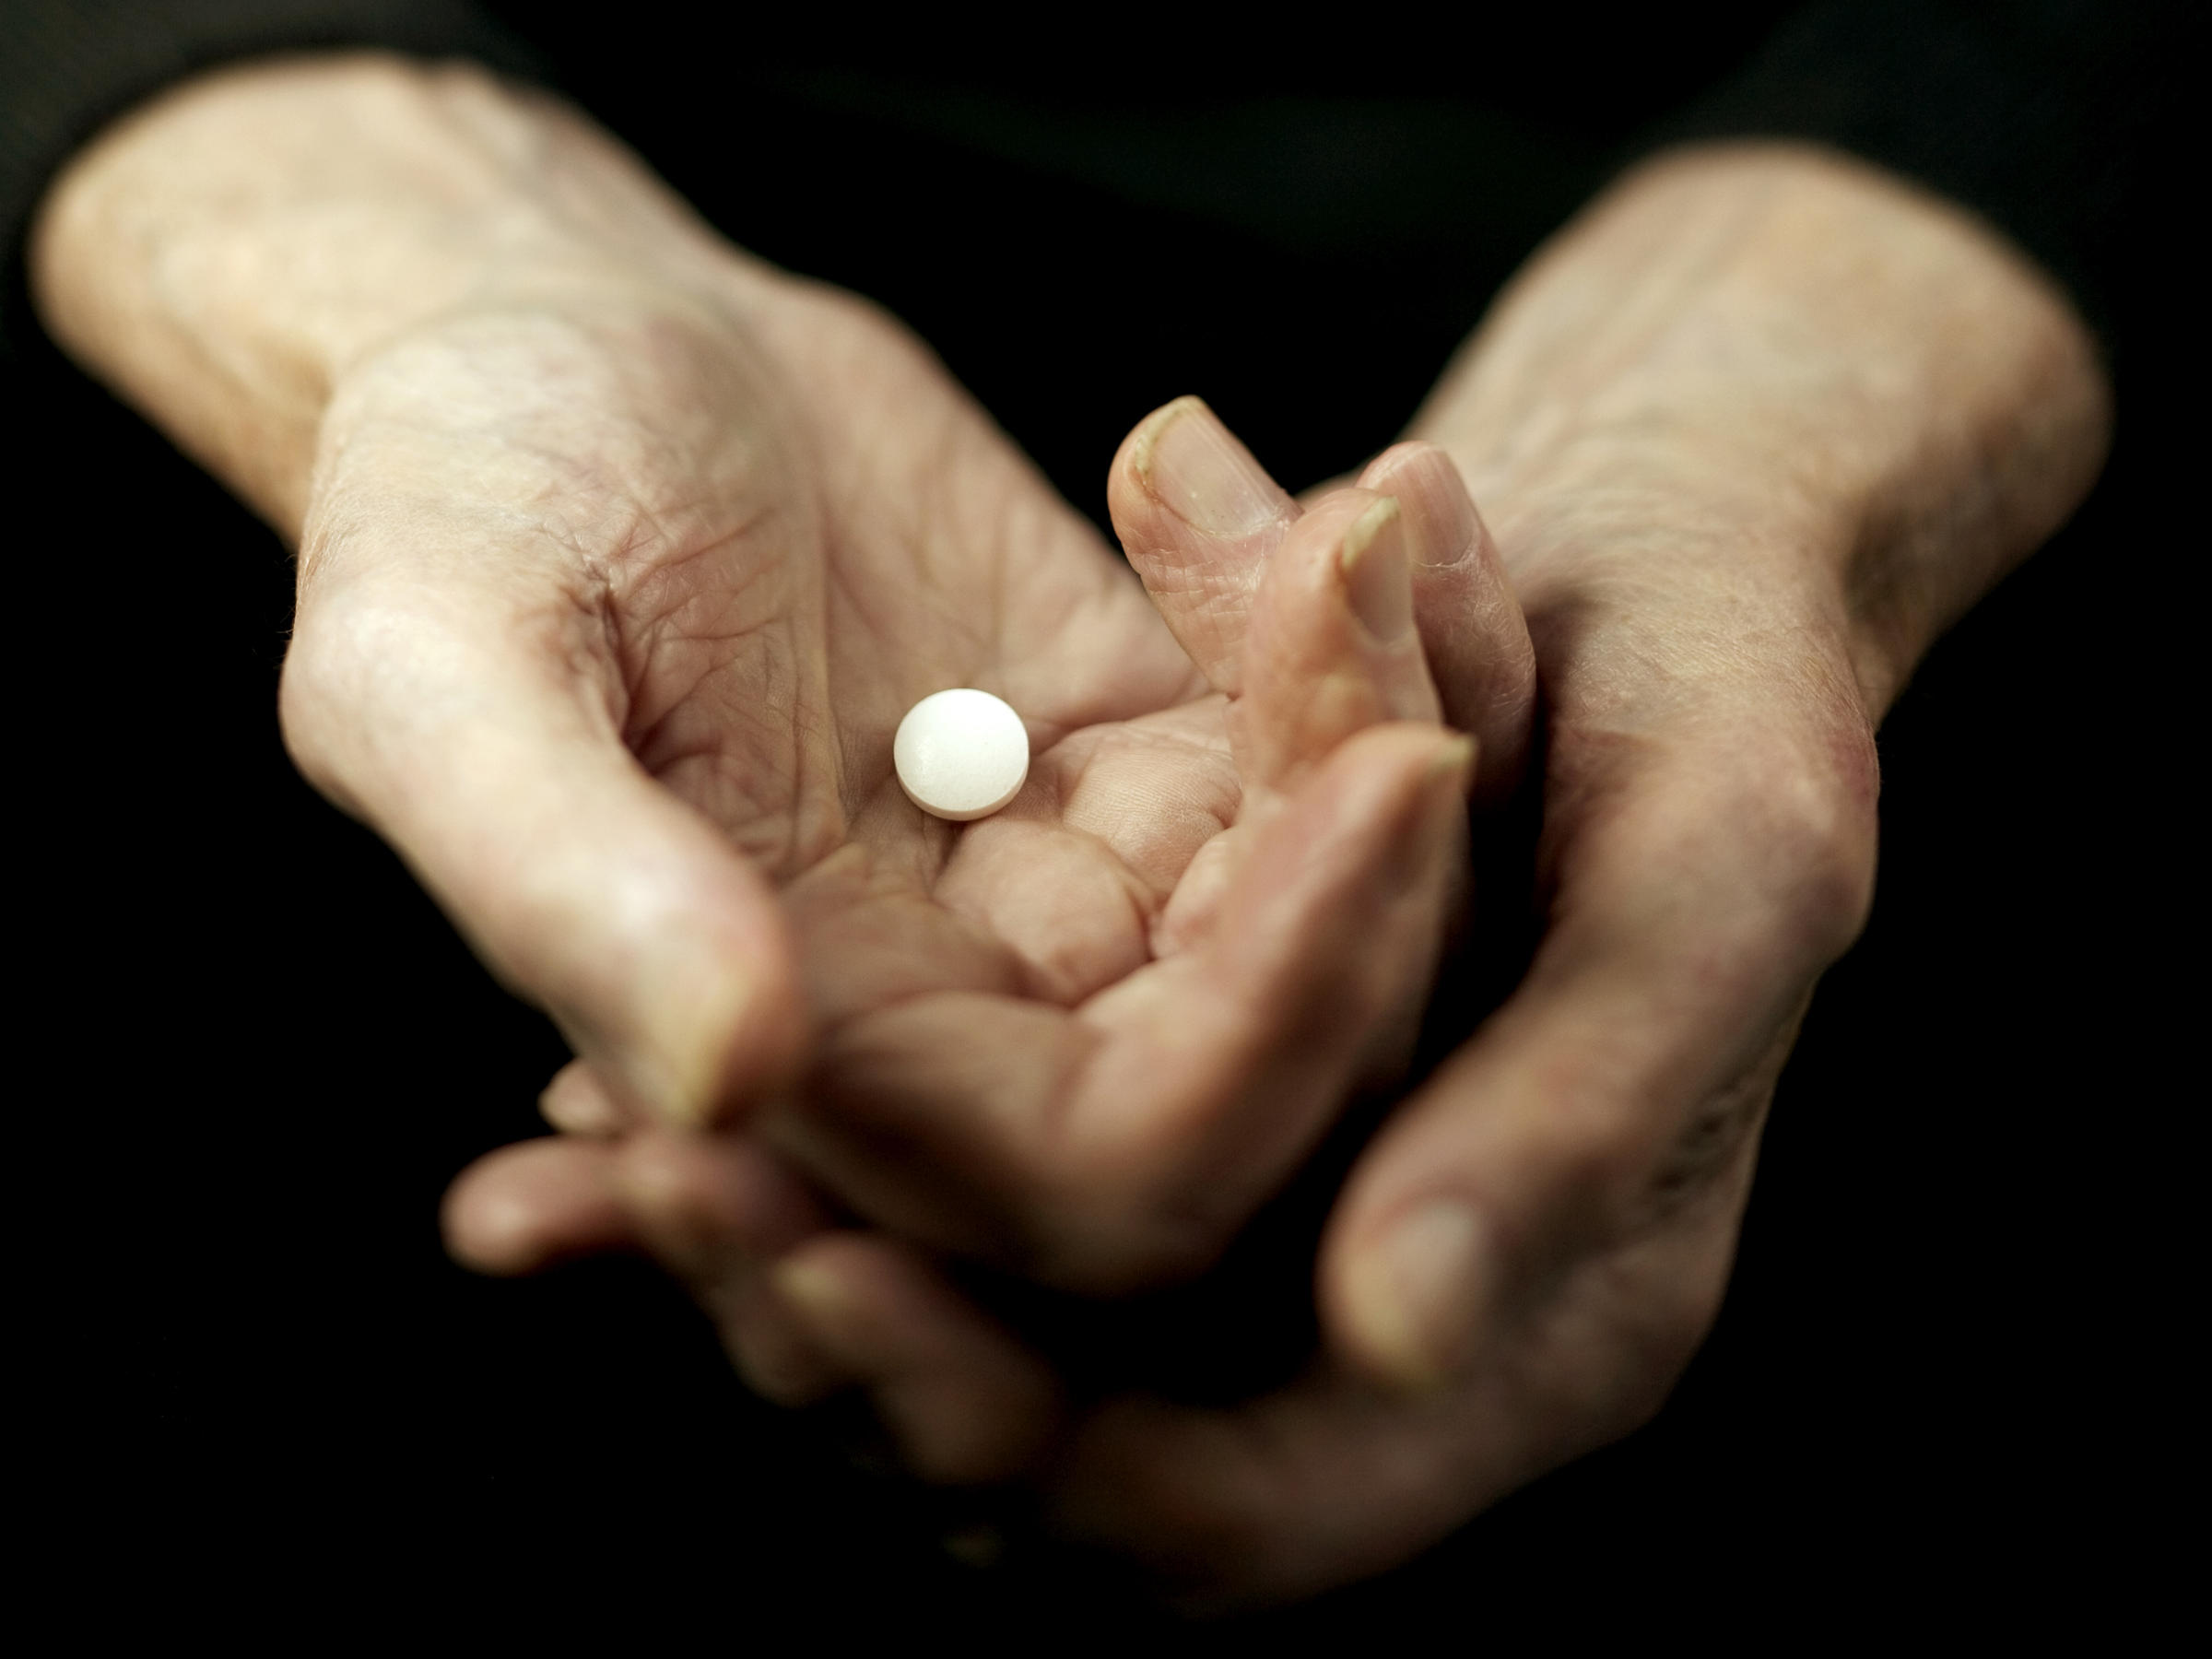 Report shows antipsychotics still misused in U.S. nursing homes